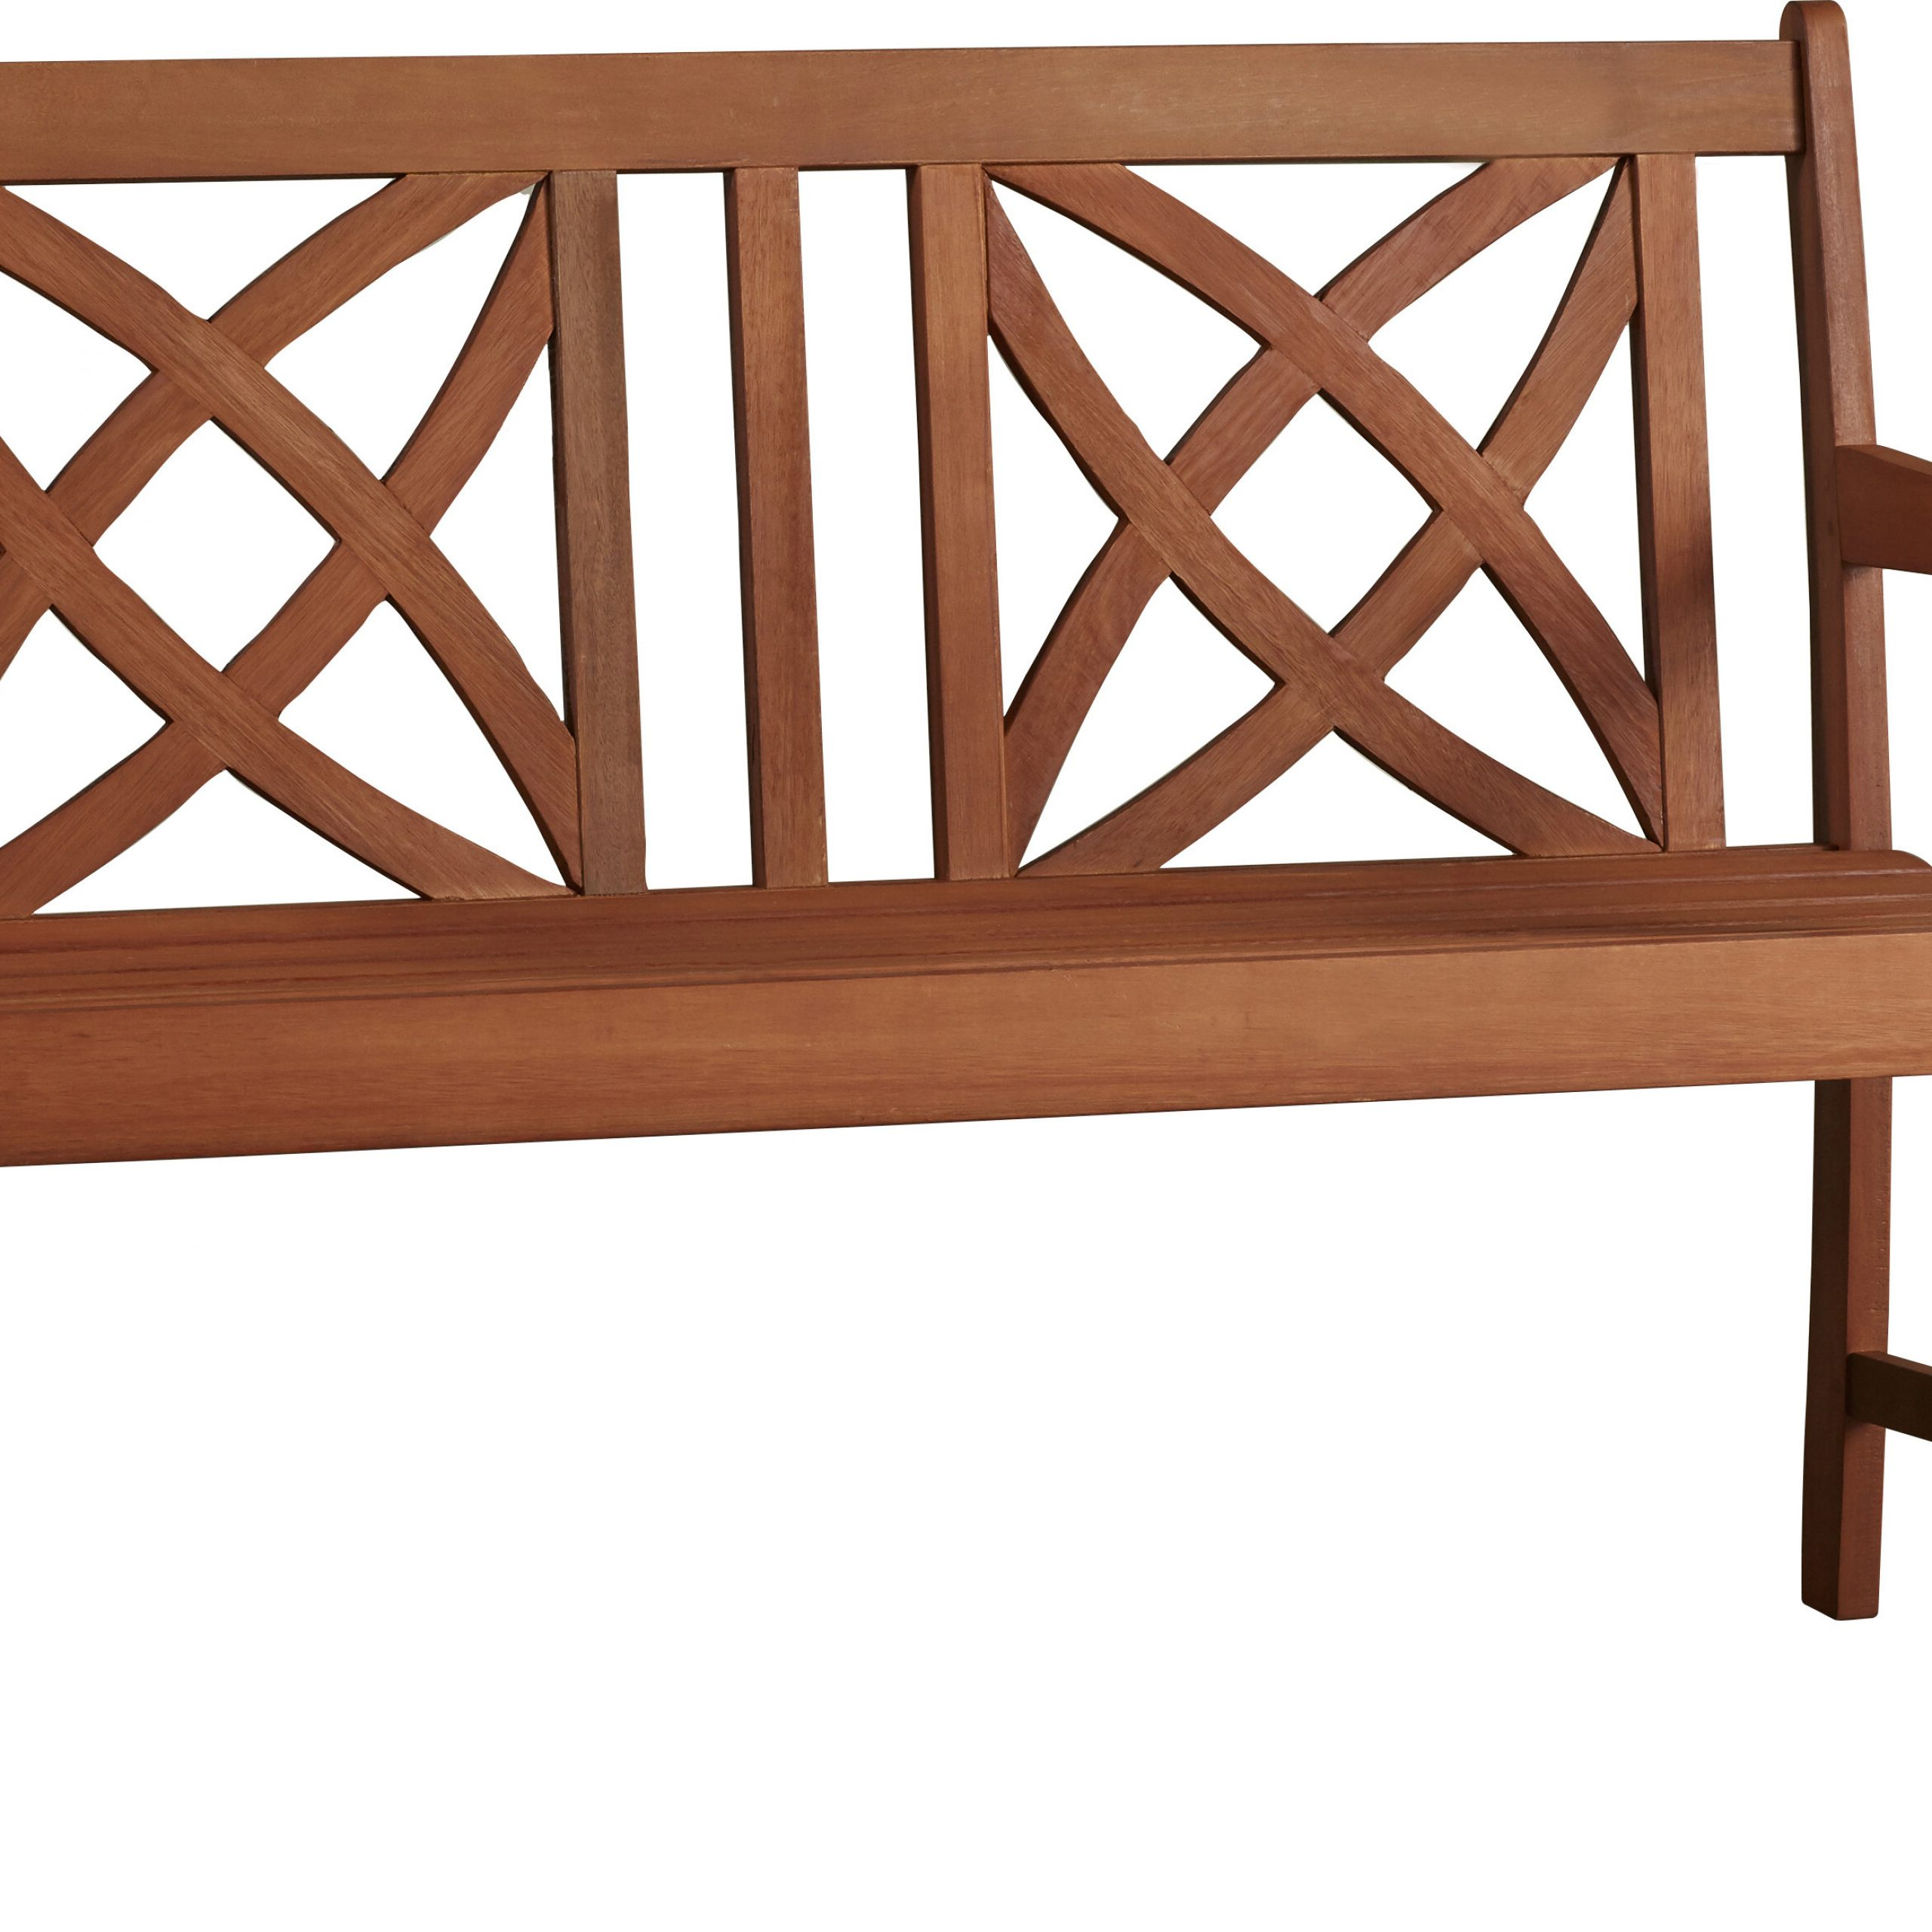 2019 Elsner Acacia Garden Benches Throughout Maliyah Solid Wood Garden Bench (View 6 of 30)